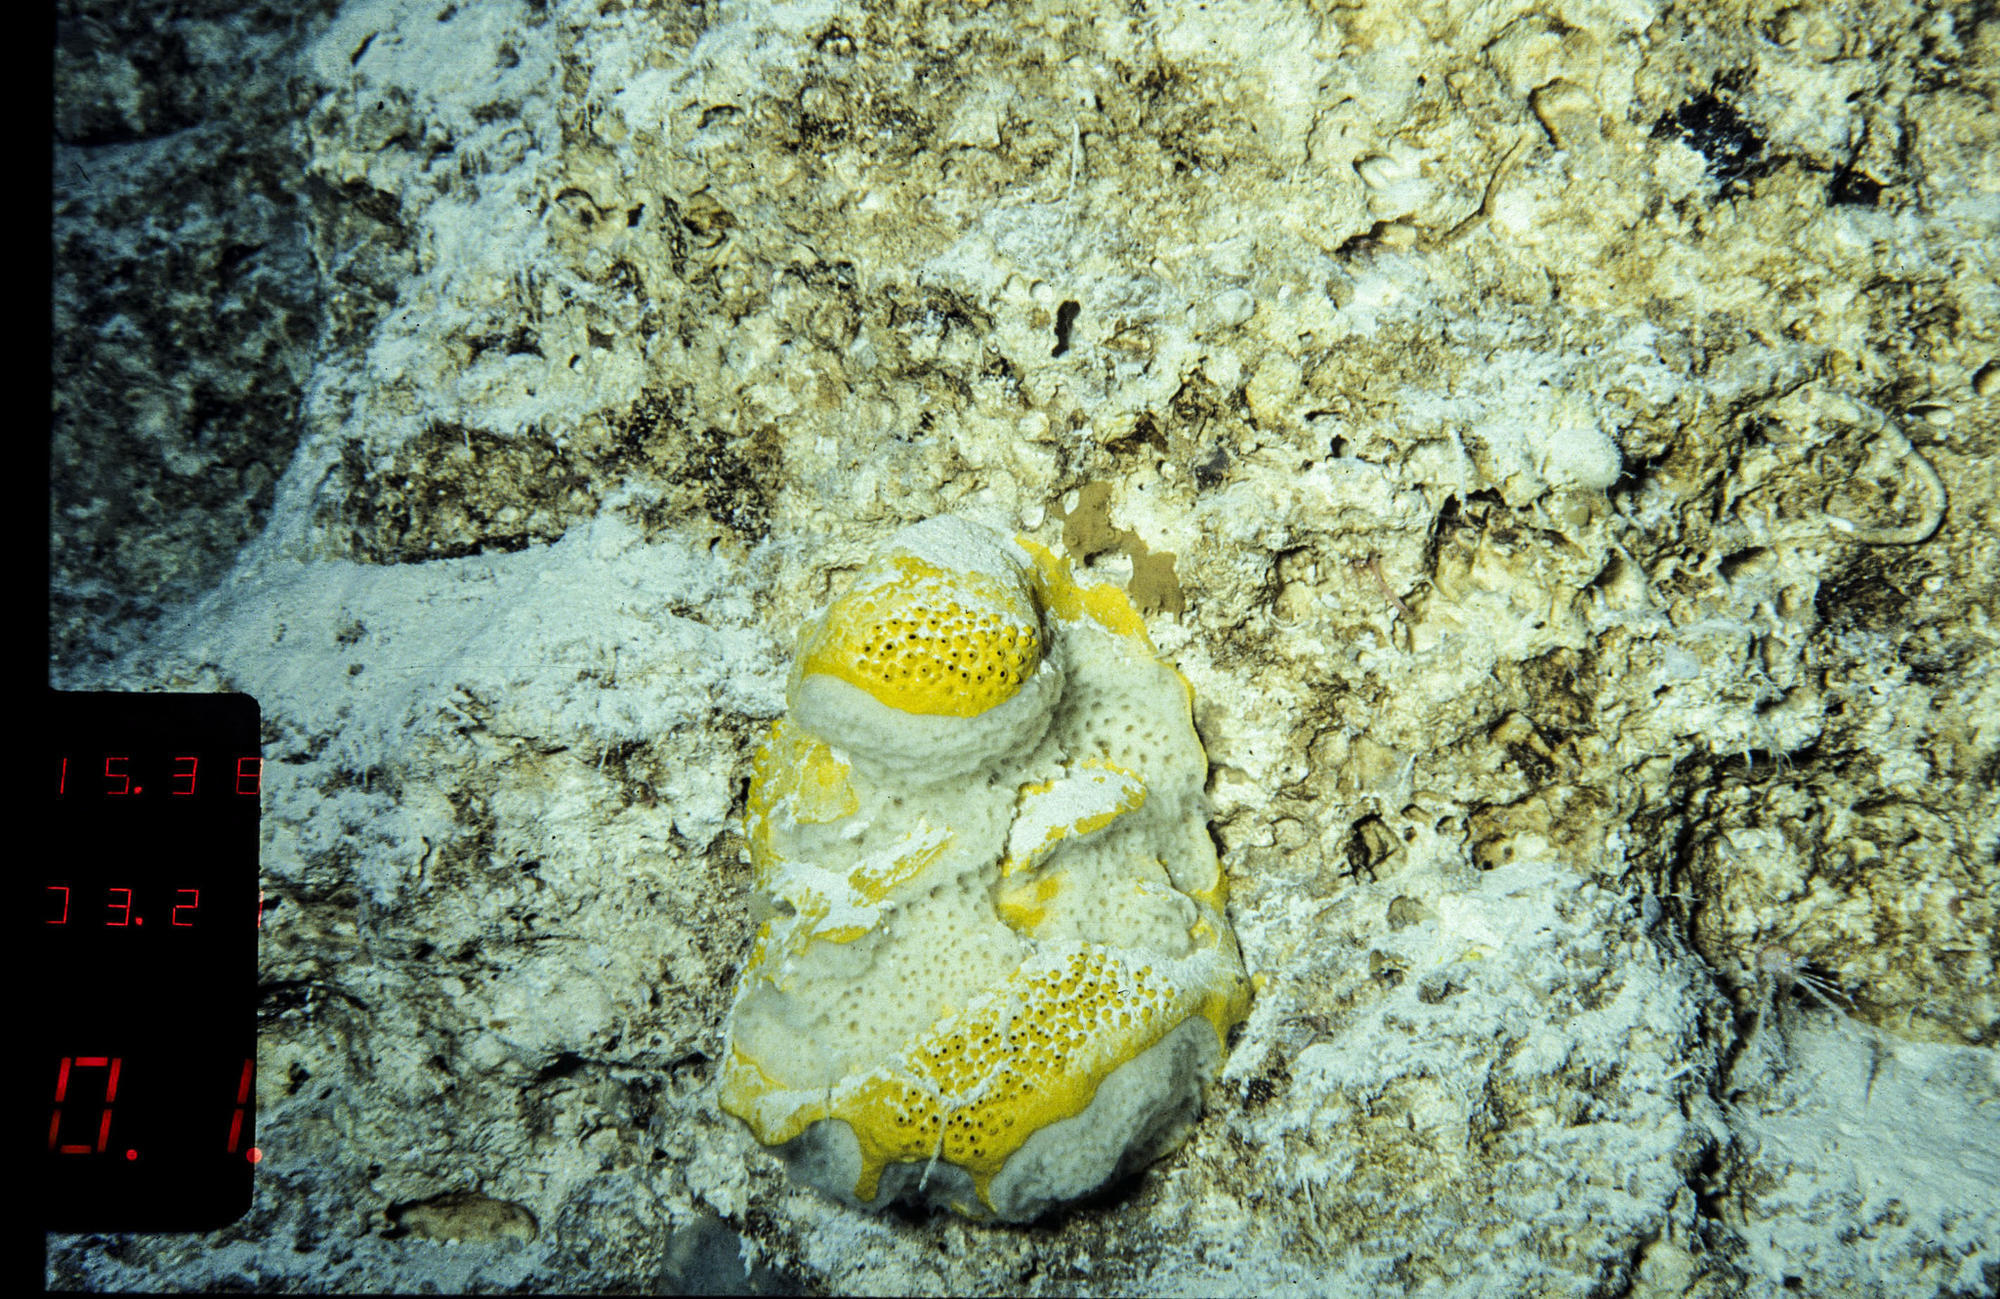 Sea sponges may hold key to fighting killer infections